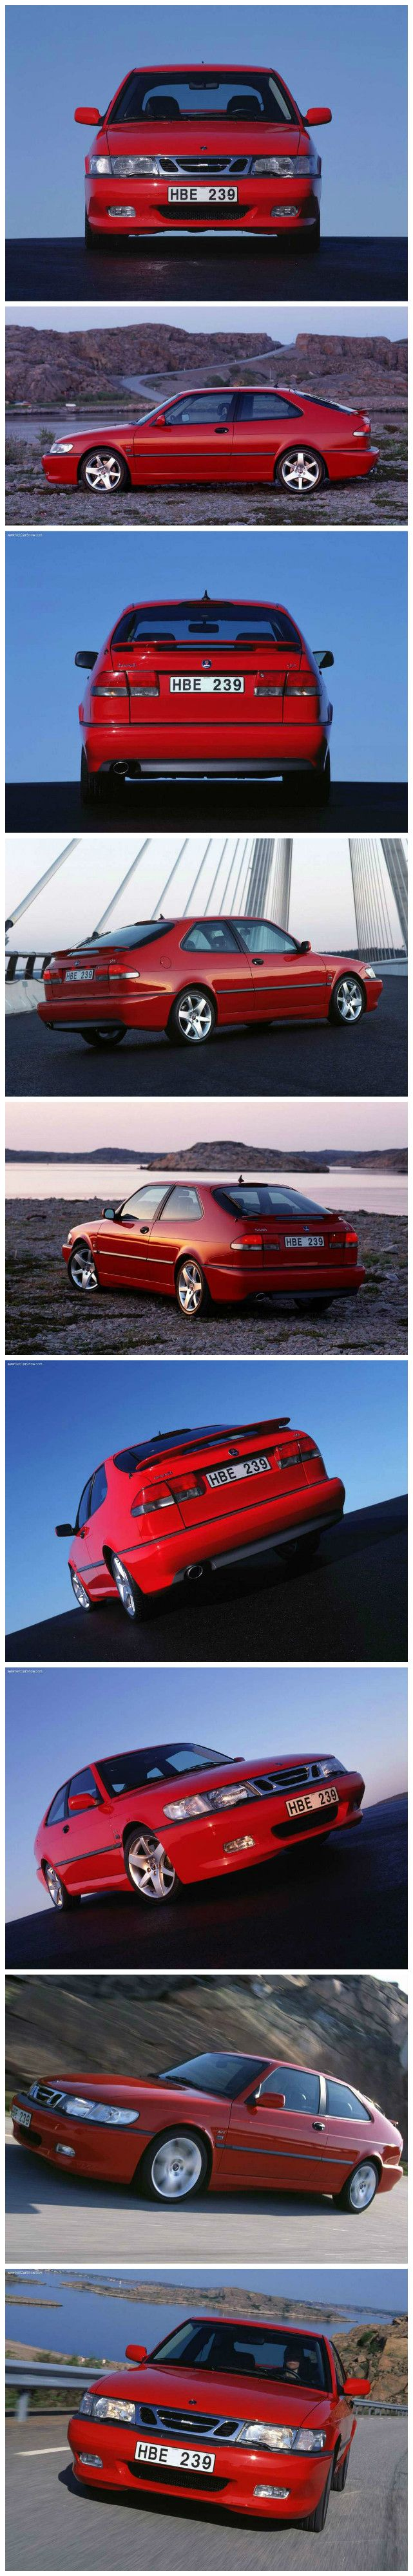 The Saab 9-3 (1999-2003) is an entry-level luxury car / compact executive car, produced by the Swedish automaker Saab.The special  Viggen release was a high-powered, no longer in production version of the 9-3. - - The Viggen, was named after the Saab Viggen aircraft. It came with a turbocharged 2.3 liter engine giving 230 hp ECE (169 kW). 0-100 km/h is done in 6.4 seconds and the top speed is 249 km/h. - https://www.amazon.co.uk/Baby-Car-Mirror-Shatterproof-Installation/dp/B06XHG6SSY